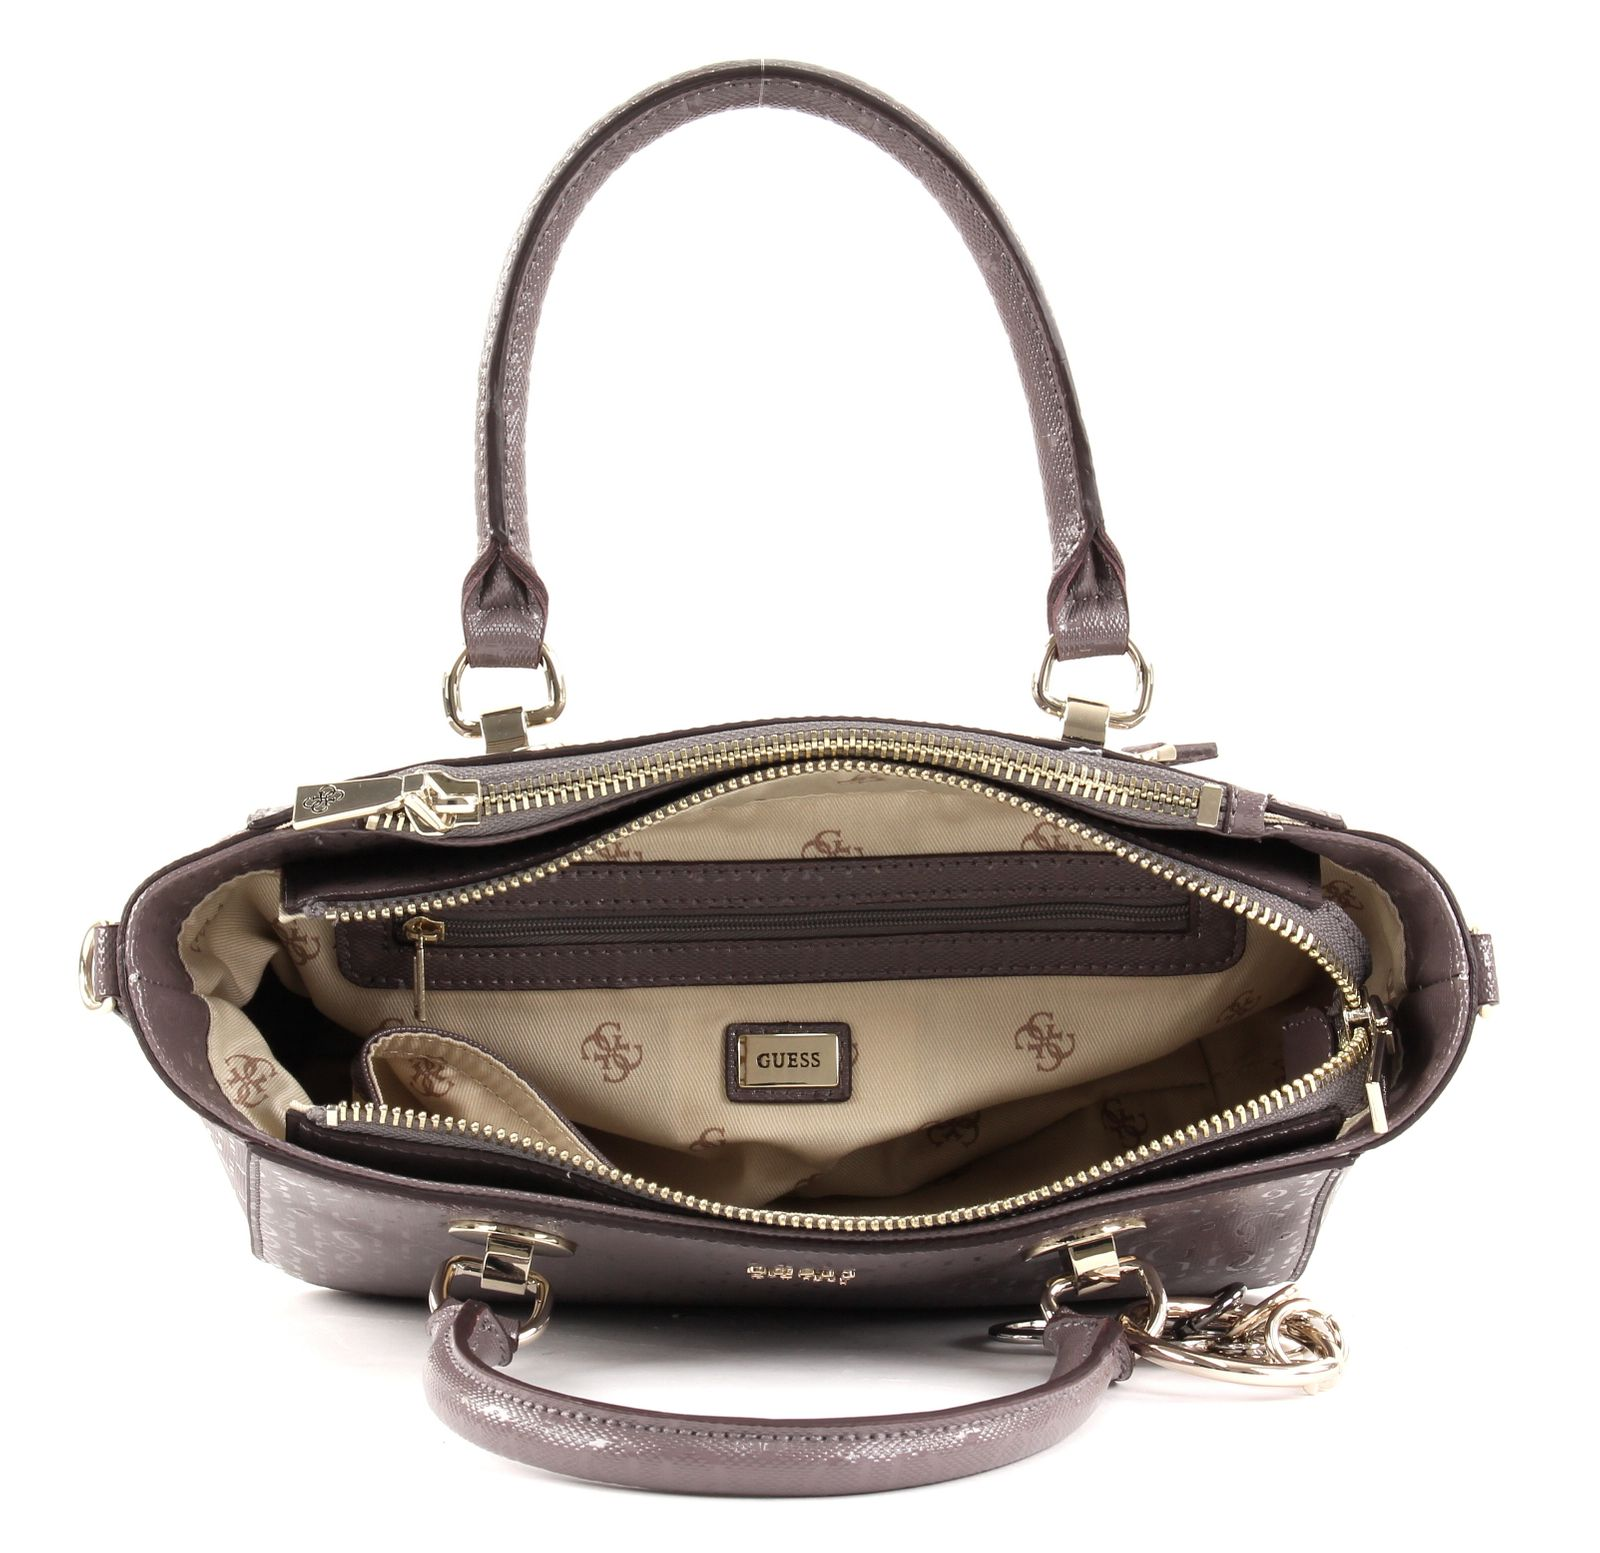 3ae88e0aeb9ce GUESS Tamra Small Society Satchel Handtasche Tasche Taupe Braun Neu ...